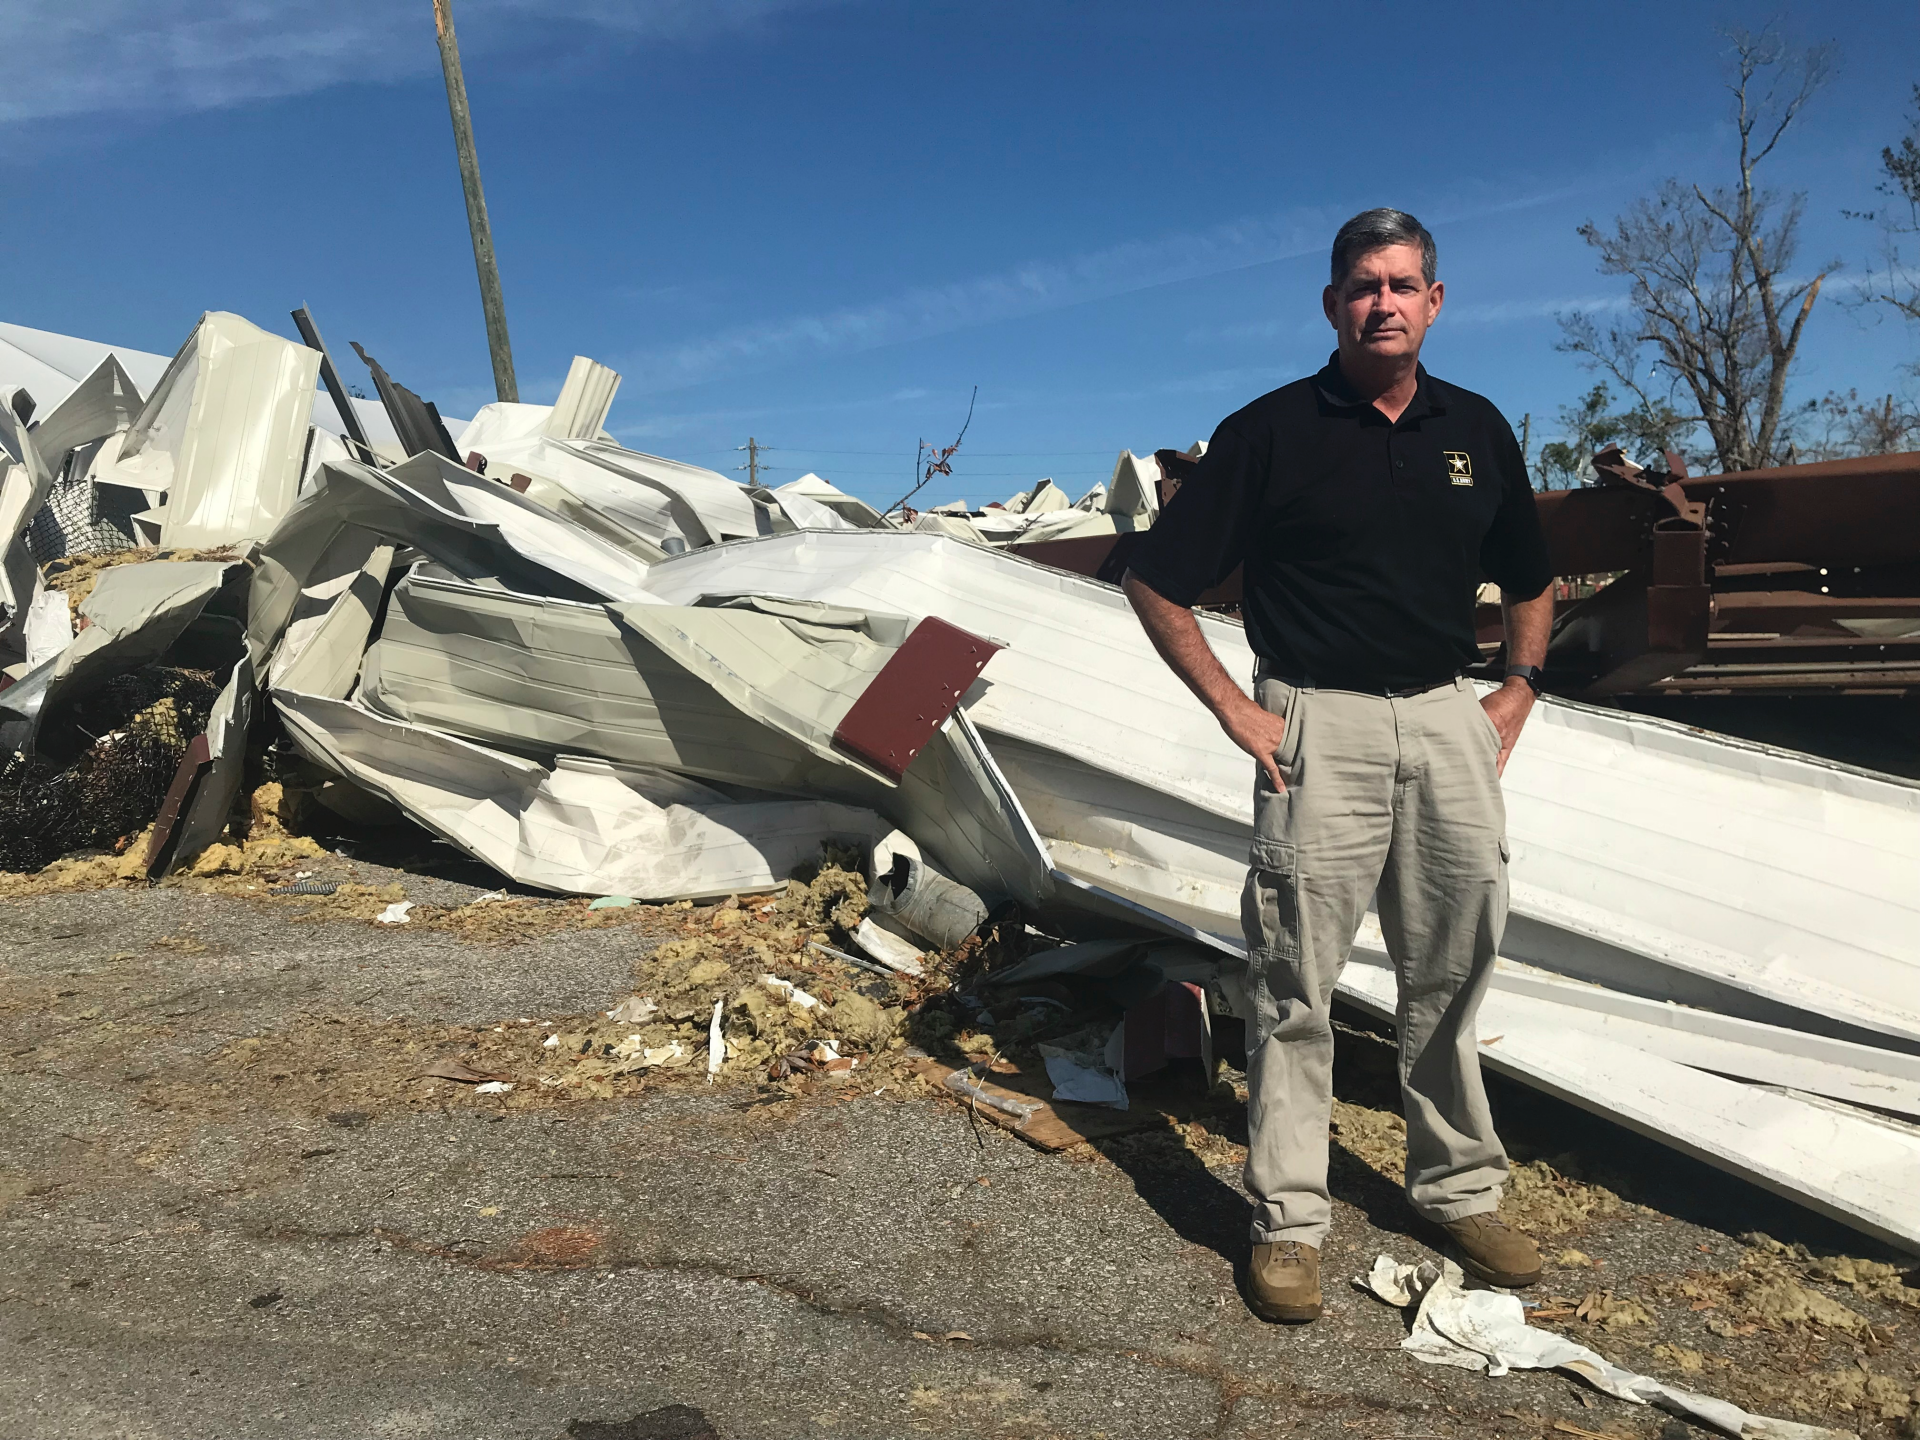 Florida's Panama City, torn apart by Hurricane Michael, now managed by 2-star Army general